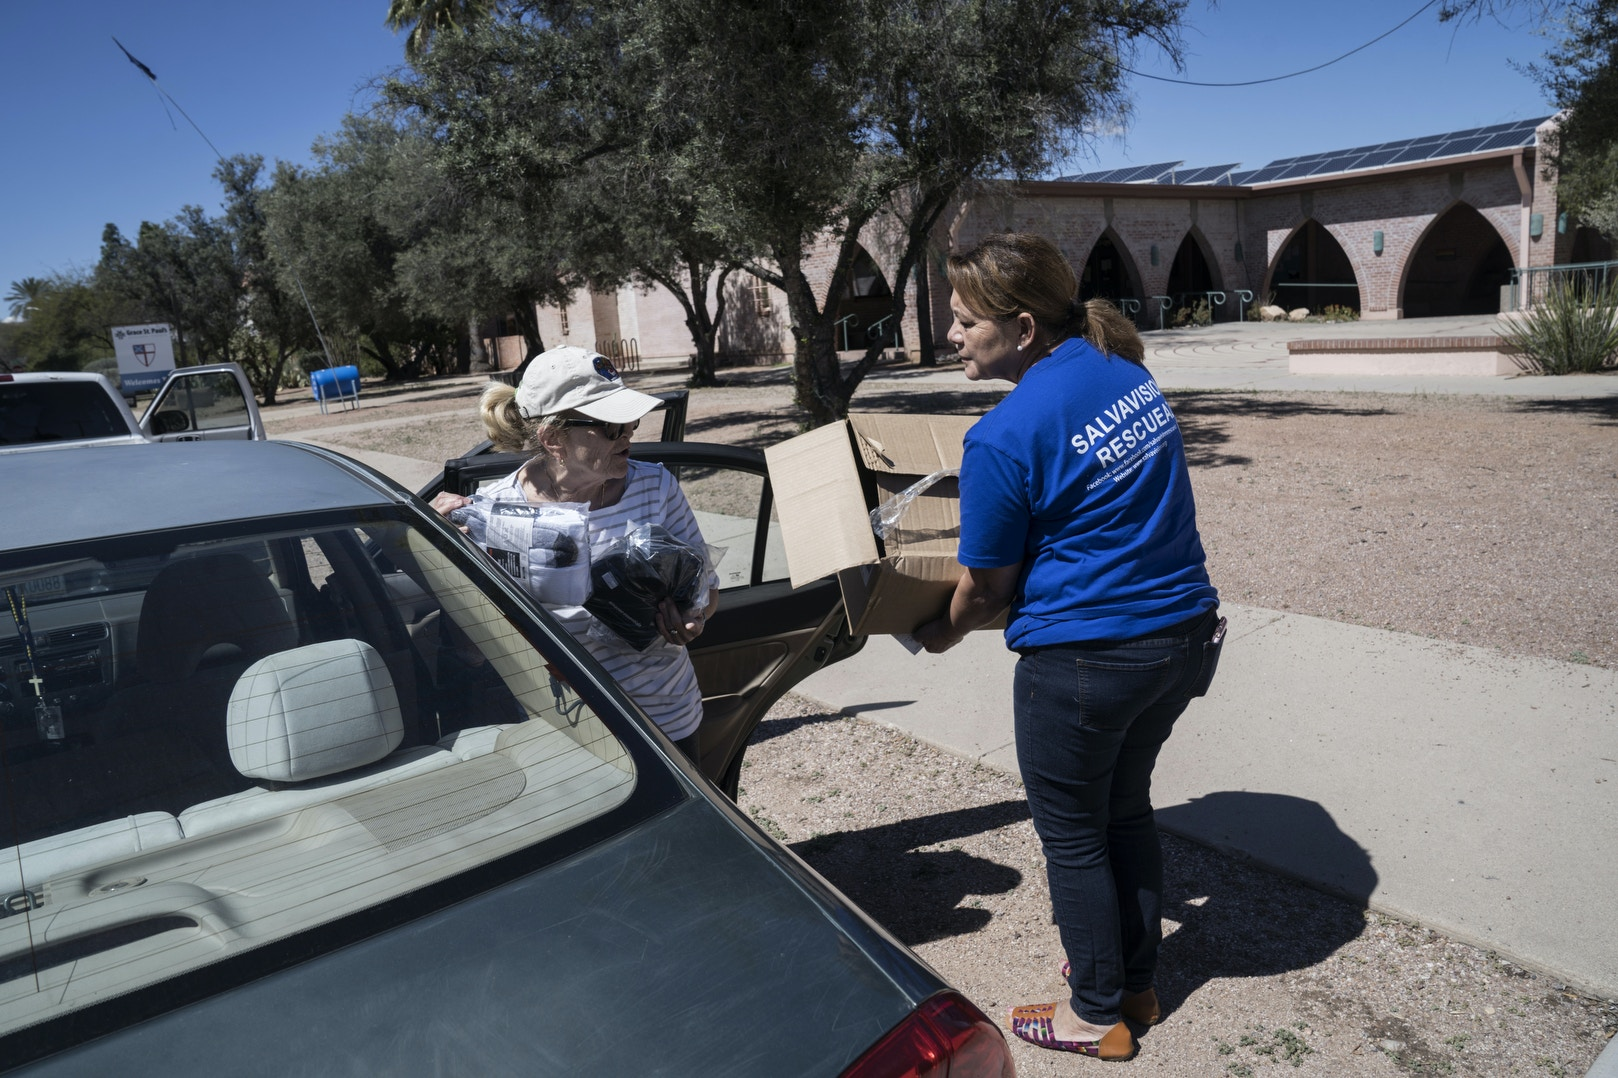 TUCSON, AZ - MARCH 14, 2020:Dora Rodriguez receives donations from Peggie Felici-Gessner, a volunteer at the Casa Alitas shelter that caters to asylum seekers in Tucson, Arizona on March 14, 2020. Ever since President Trump enacted the Remain in Mexico policy shelters on the U.S. side of the border have been trying to get their supplies and donations to camps in Nogales and other border cities where asylum seekers are living. In 1980 19-year-old Dora Rodriguez, from El Salvador, made the difficult journey of crossing into the US near Lukeville, AZ on foot. Of the 26 individuals she crossed the Sonoran desert with 13 died in the gruelling heat, one of the pre-eminent events that led to the Sanctuary Movement. Dora eventually naturalized in the US and started an advocacy group, Salvavision Rescue Arizona, to support asylum-seekers. On a weekly basis Dora visits asylum seekers in detention, writes them letters, fundraises and brings donated supplies to the migrant camps on the Mexican side of the US - Mexico border. Photo by Kitra Cahana/MAPS for The Intercept